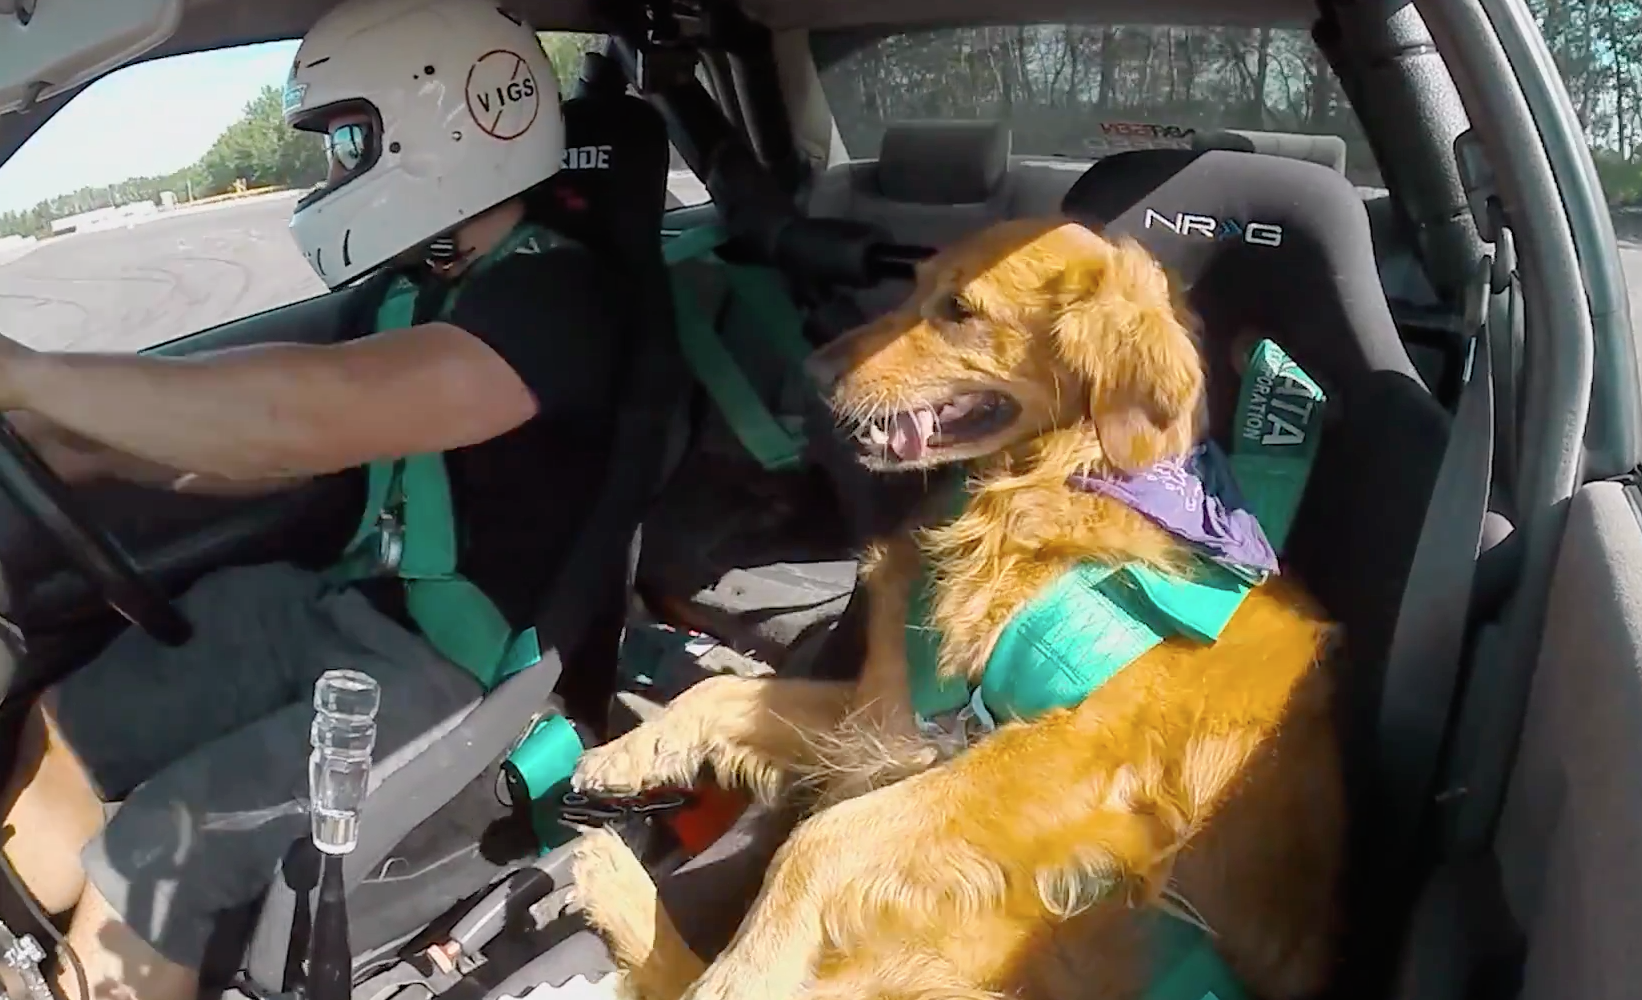 Watching this dog drifting is guaranteed to put a smile on your face